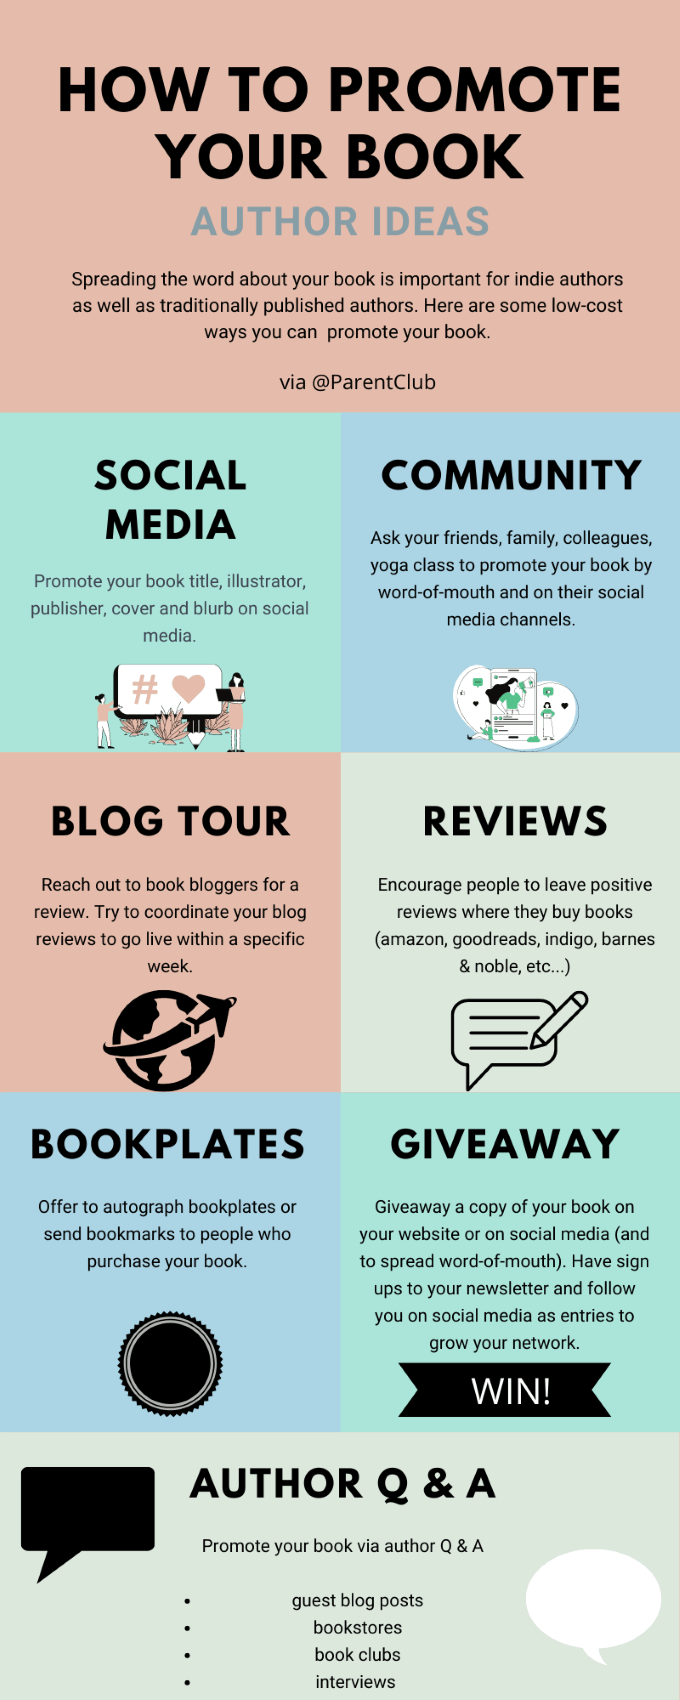 How to promote your book author ideas via www.parentclub.ca